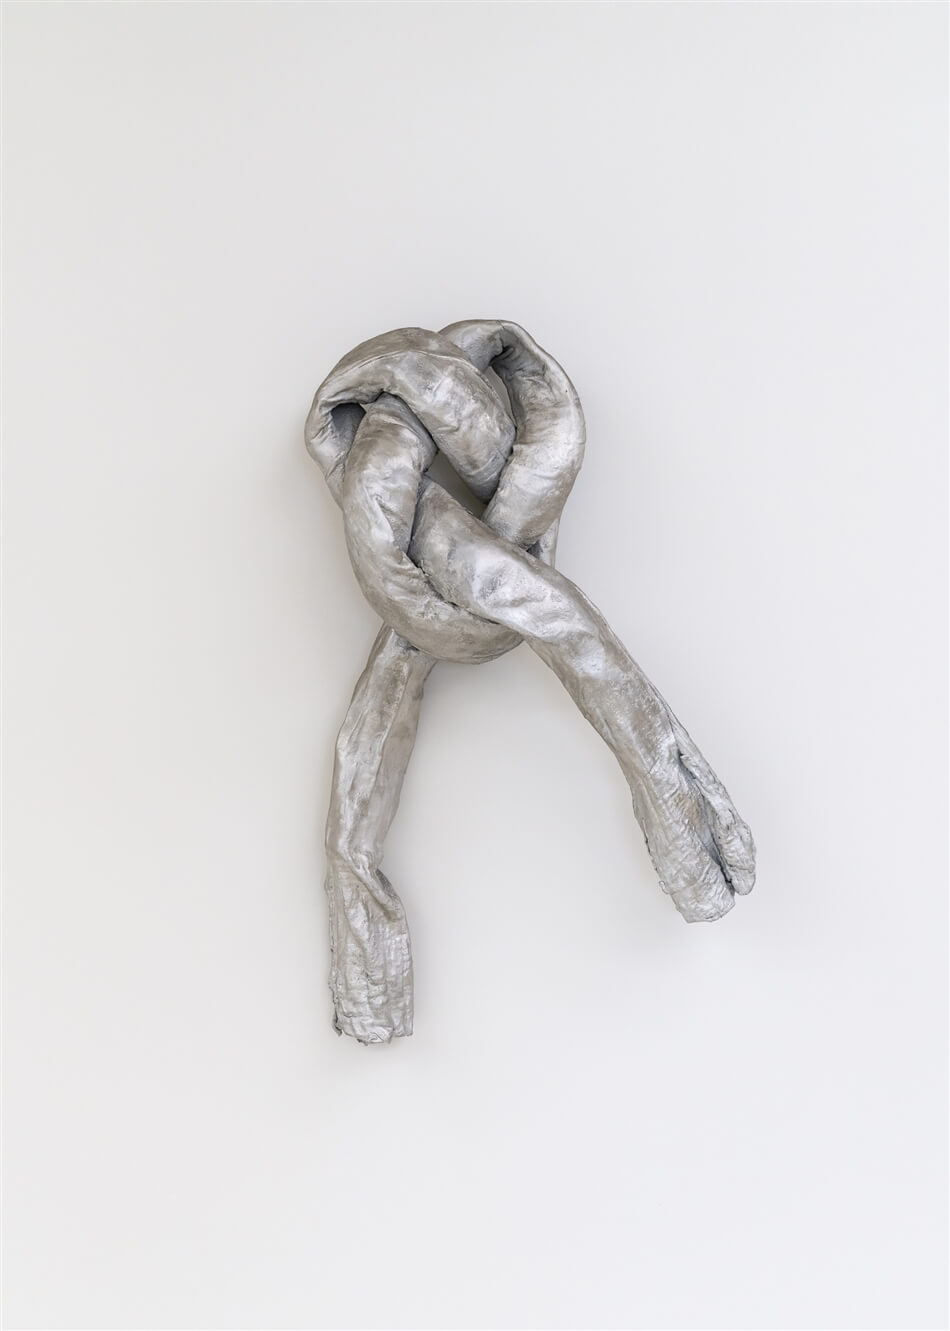 Knotted, Torn, Scattered: Sculpture after Abstract Expressionism